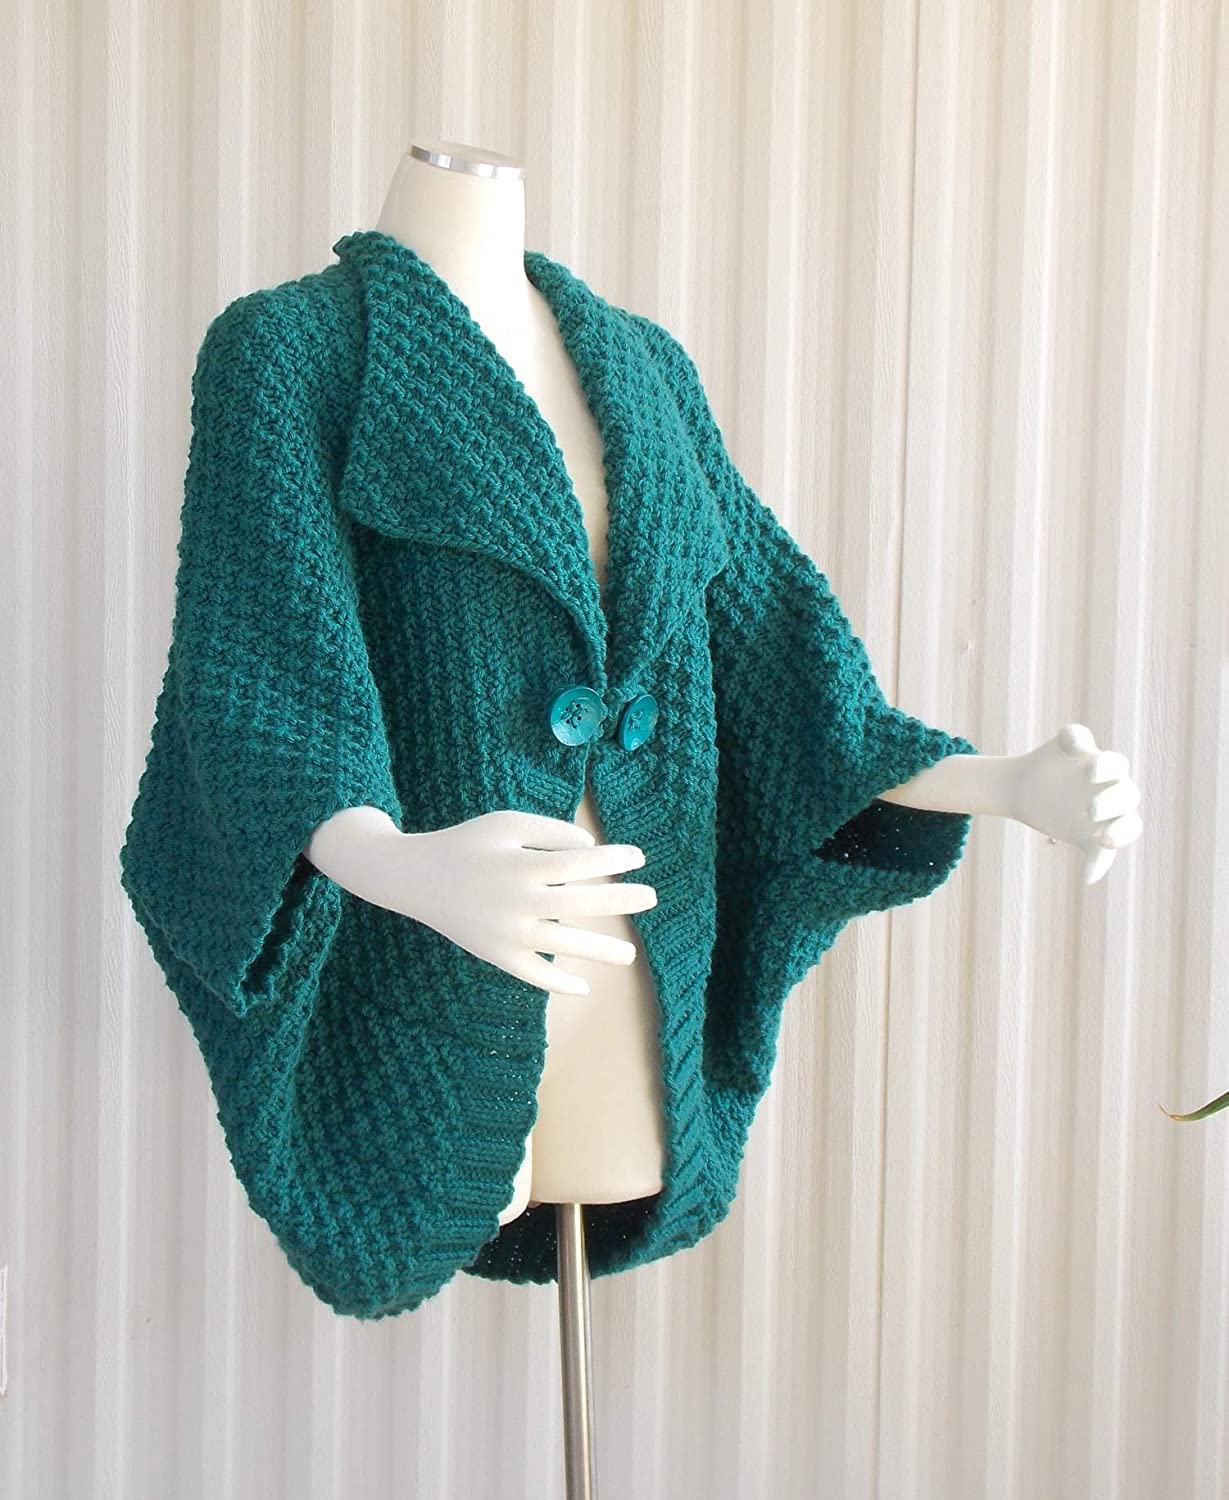 Max 46% OFF Hand KnIt Cape. Knit Bolero Limited Special Price Swe Cardigan Jacket Oversize